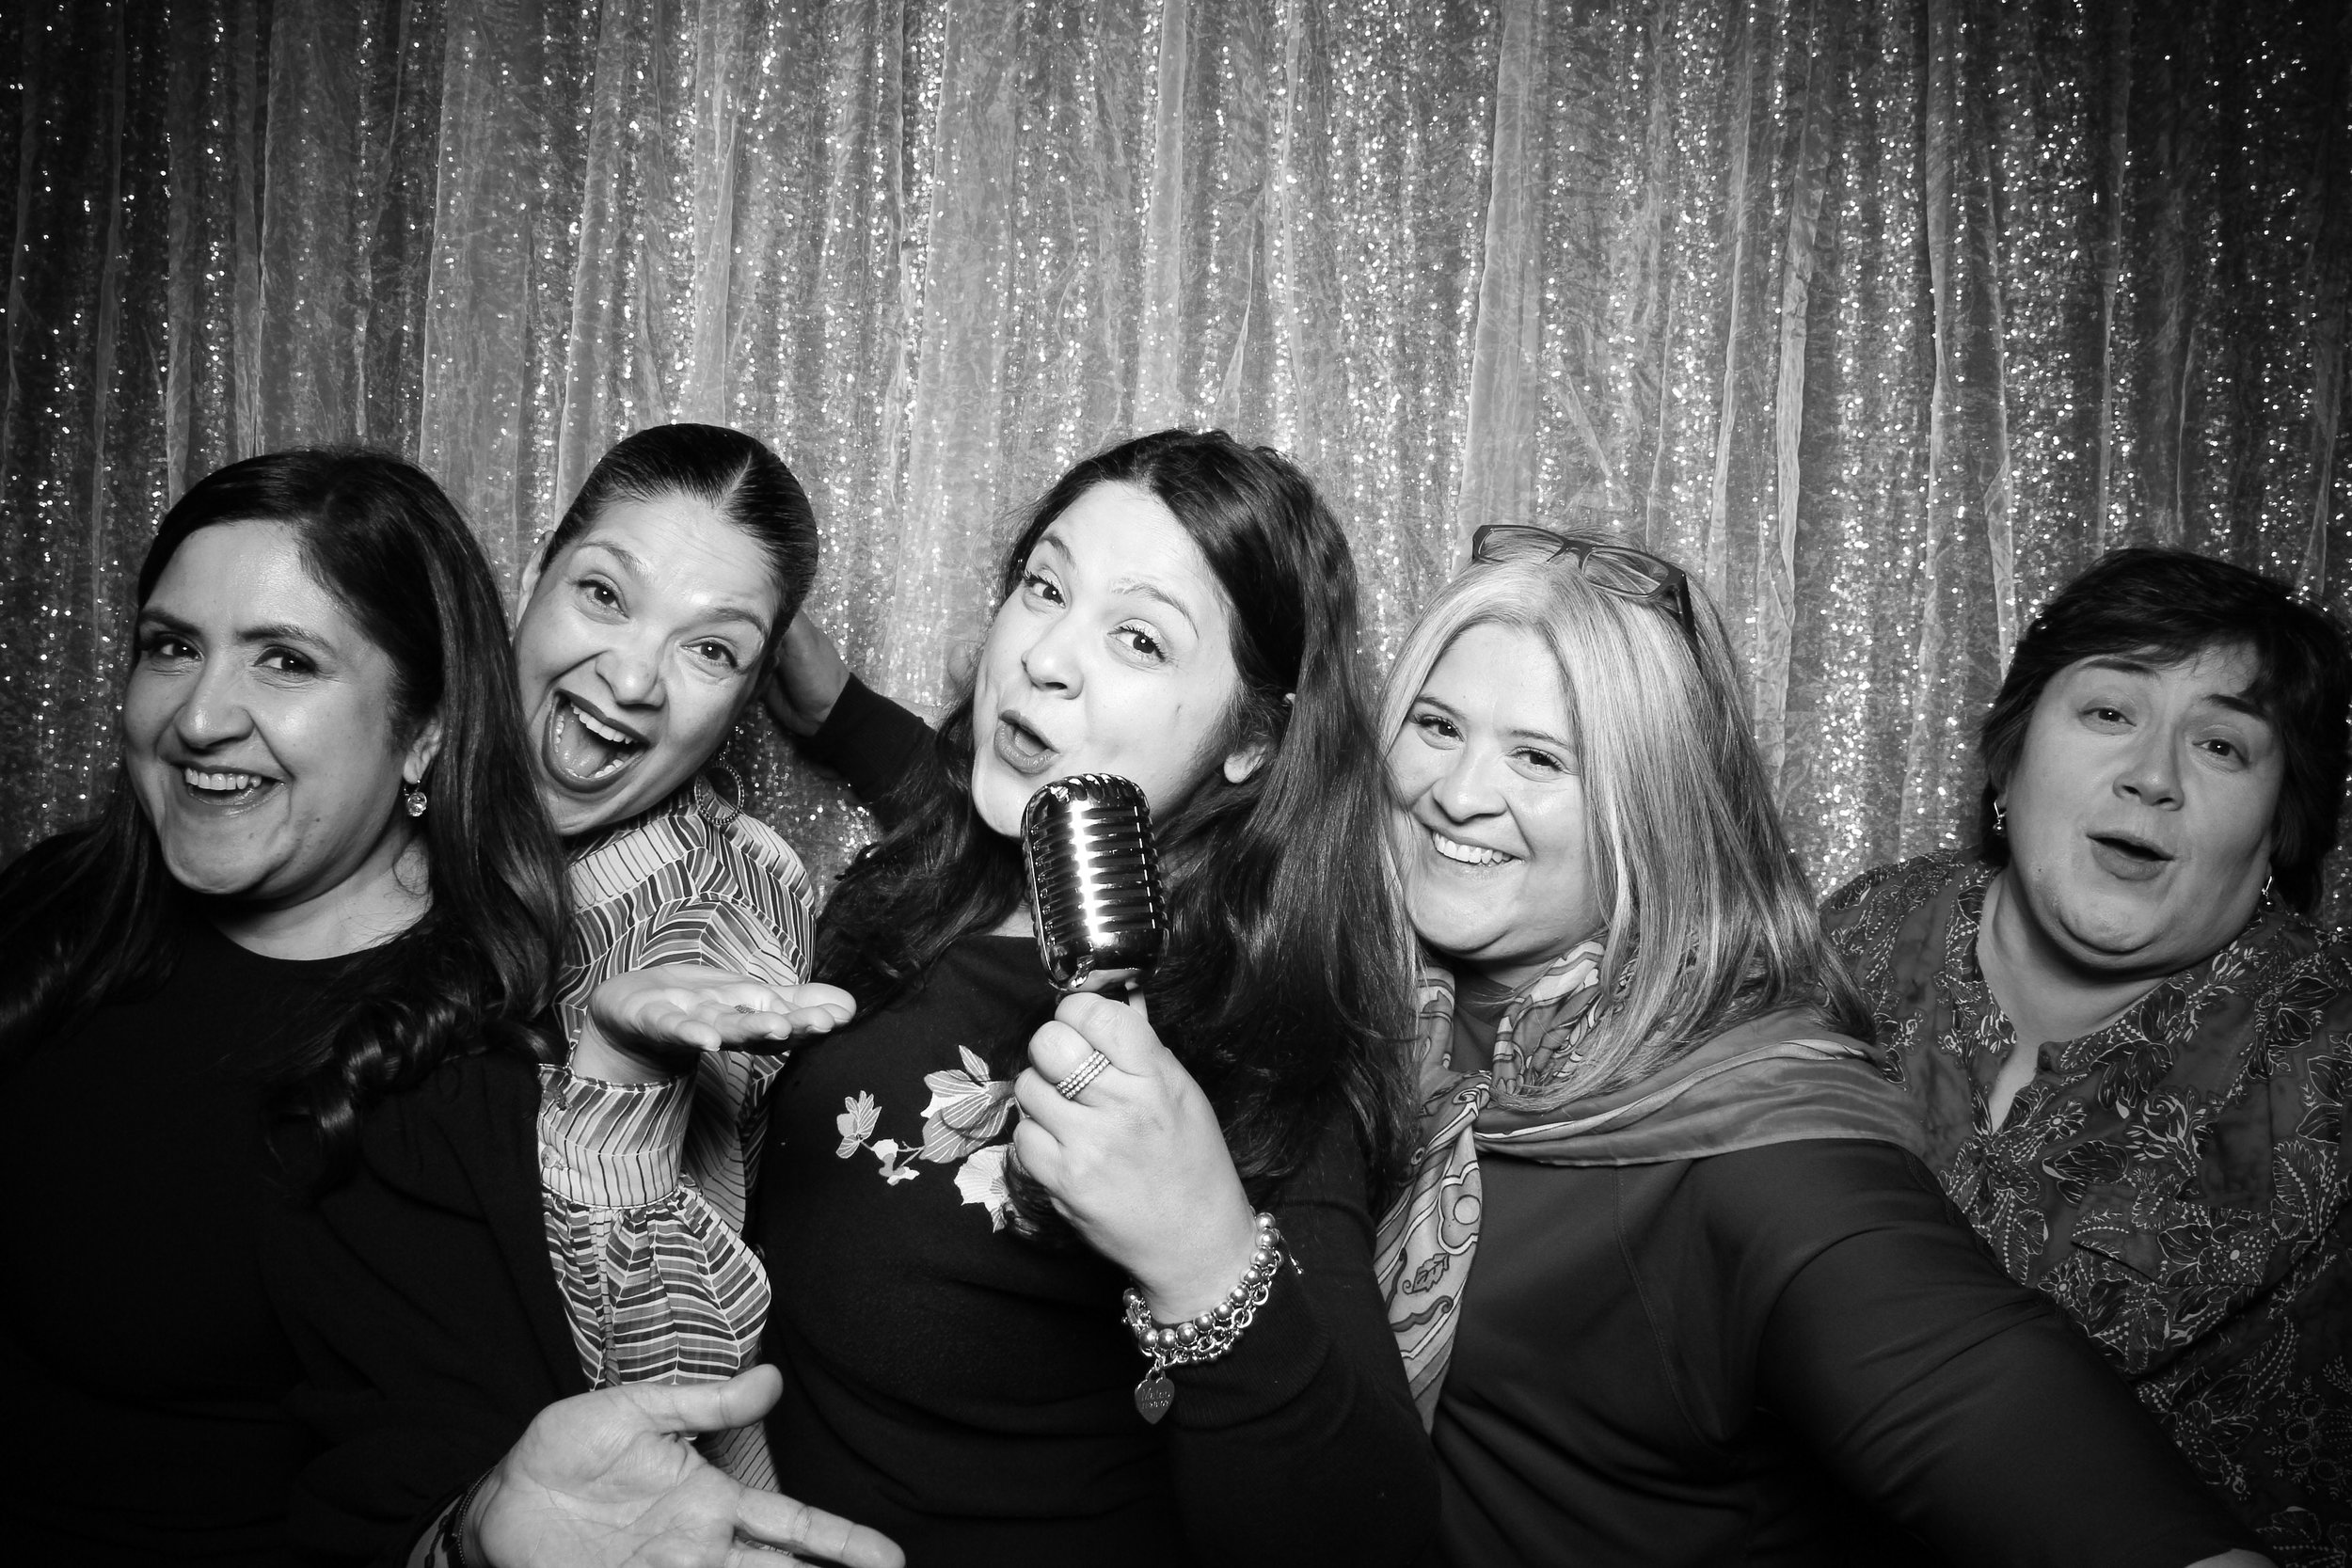 Chicago_Vintage_Wedding_Photobooth_Glen_Club_06.jpg